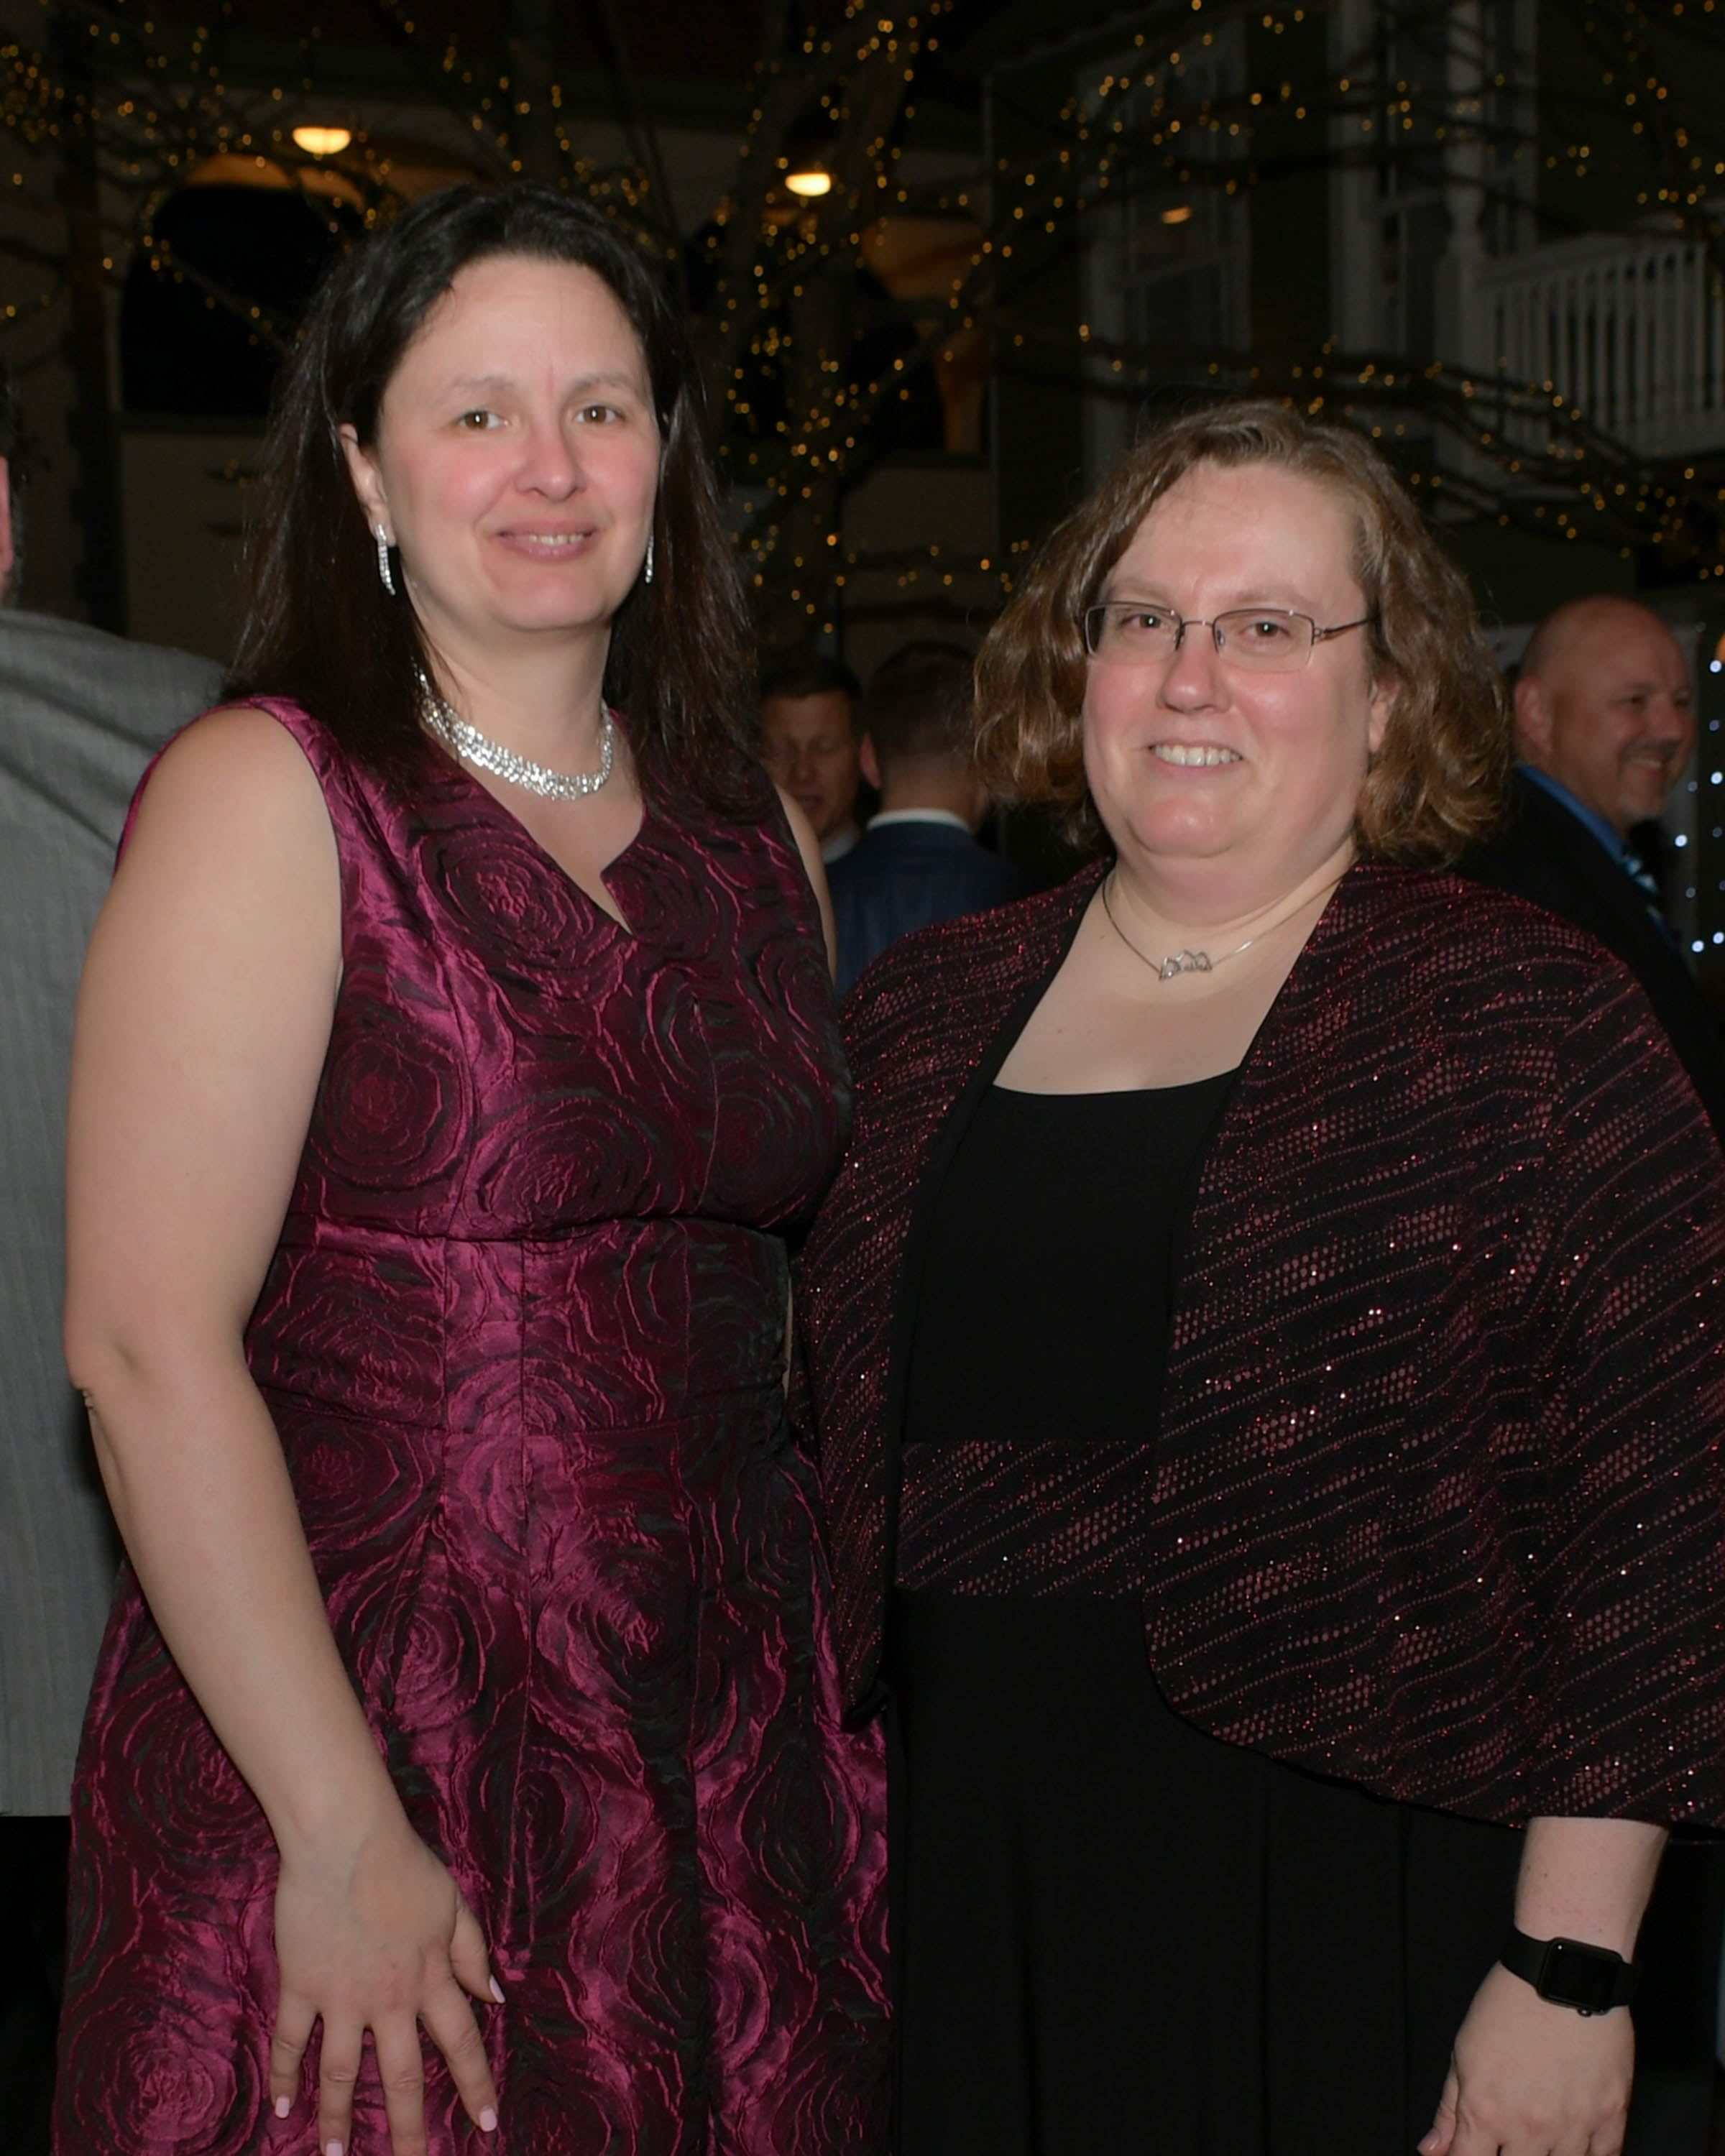 Vin Le Soir to benefit AIM Services, Inc. two women at event